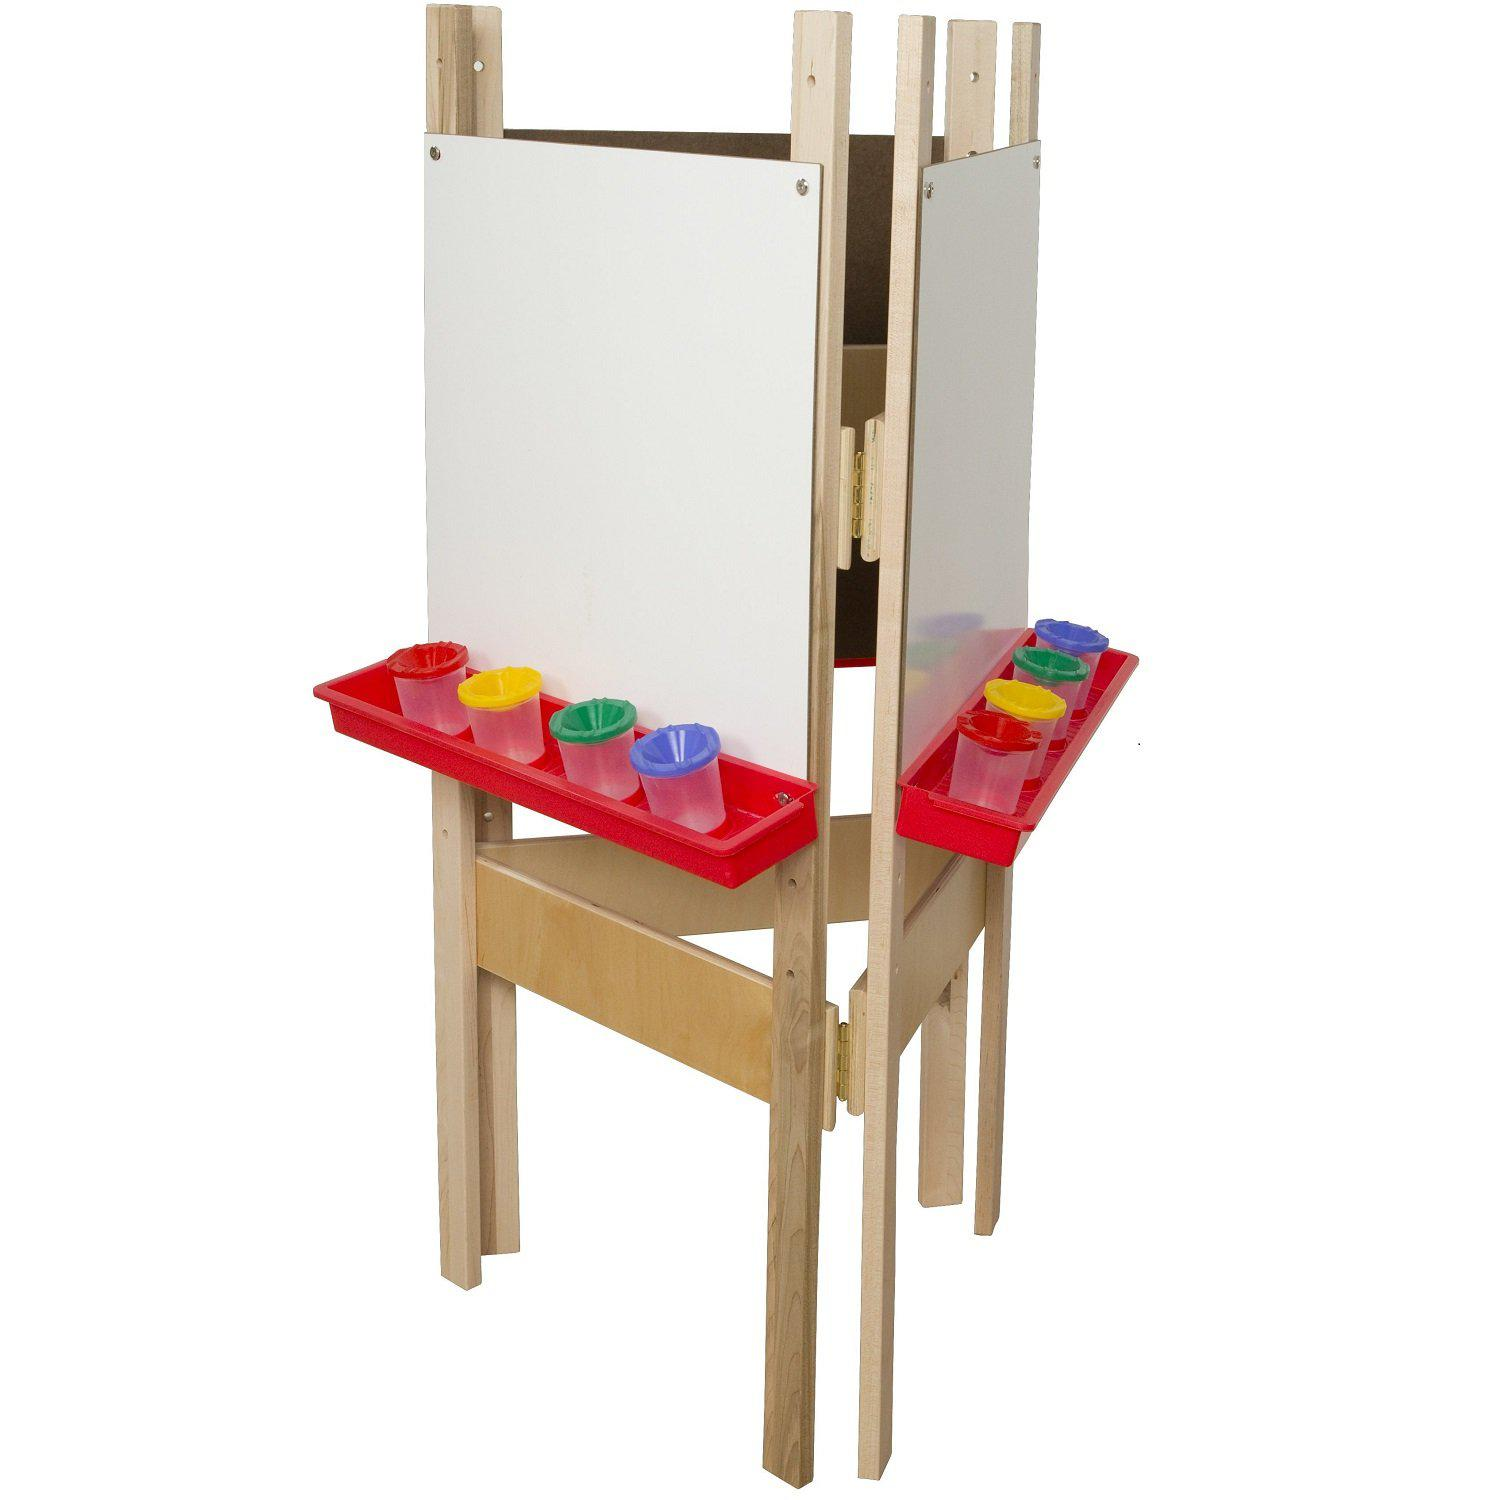 Wood Designs 3-Sided Adjustable Easel